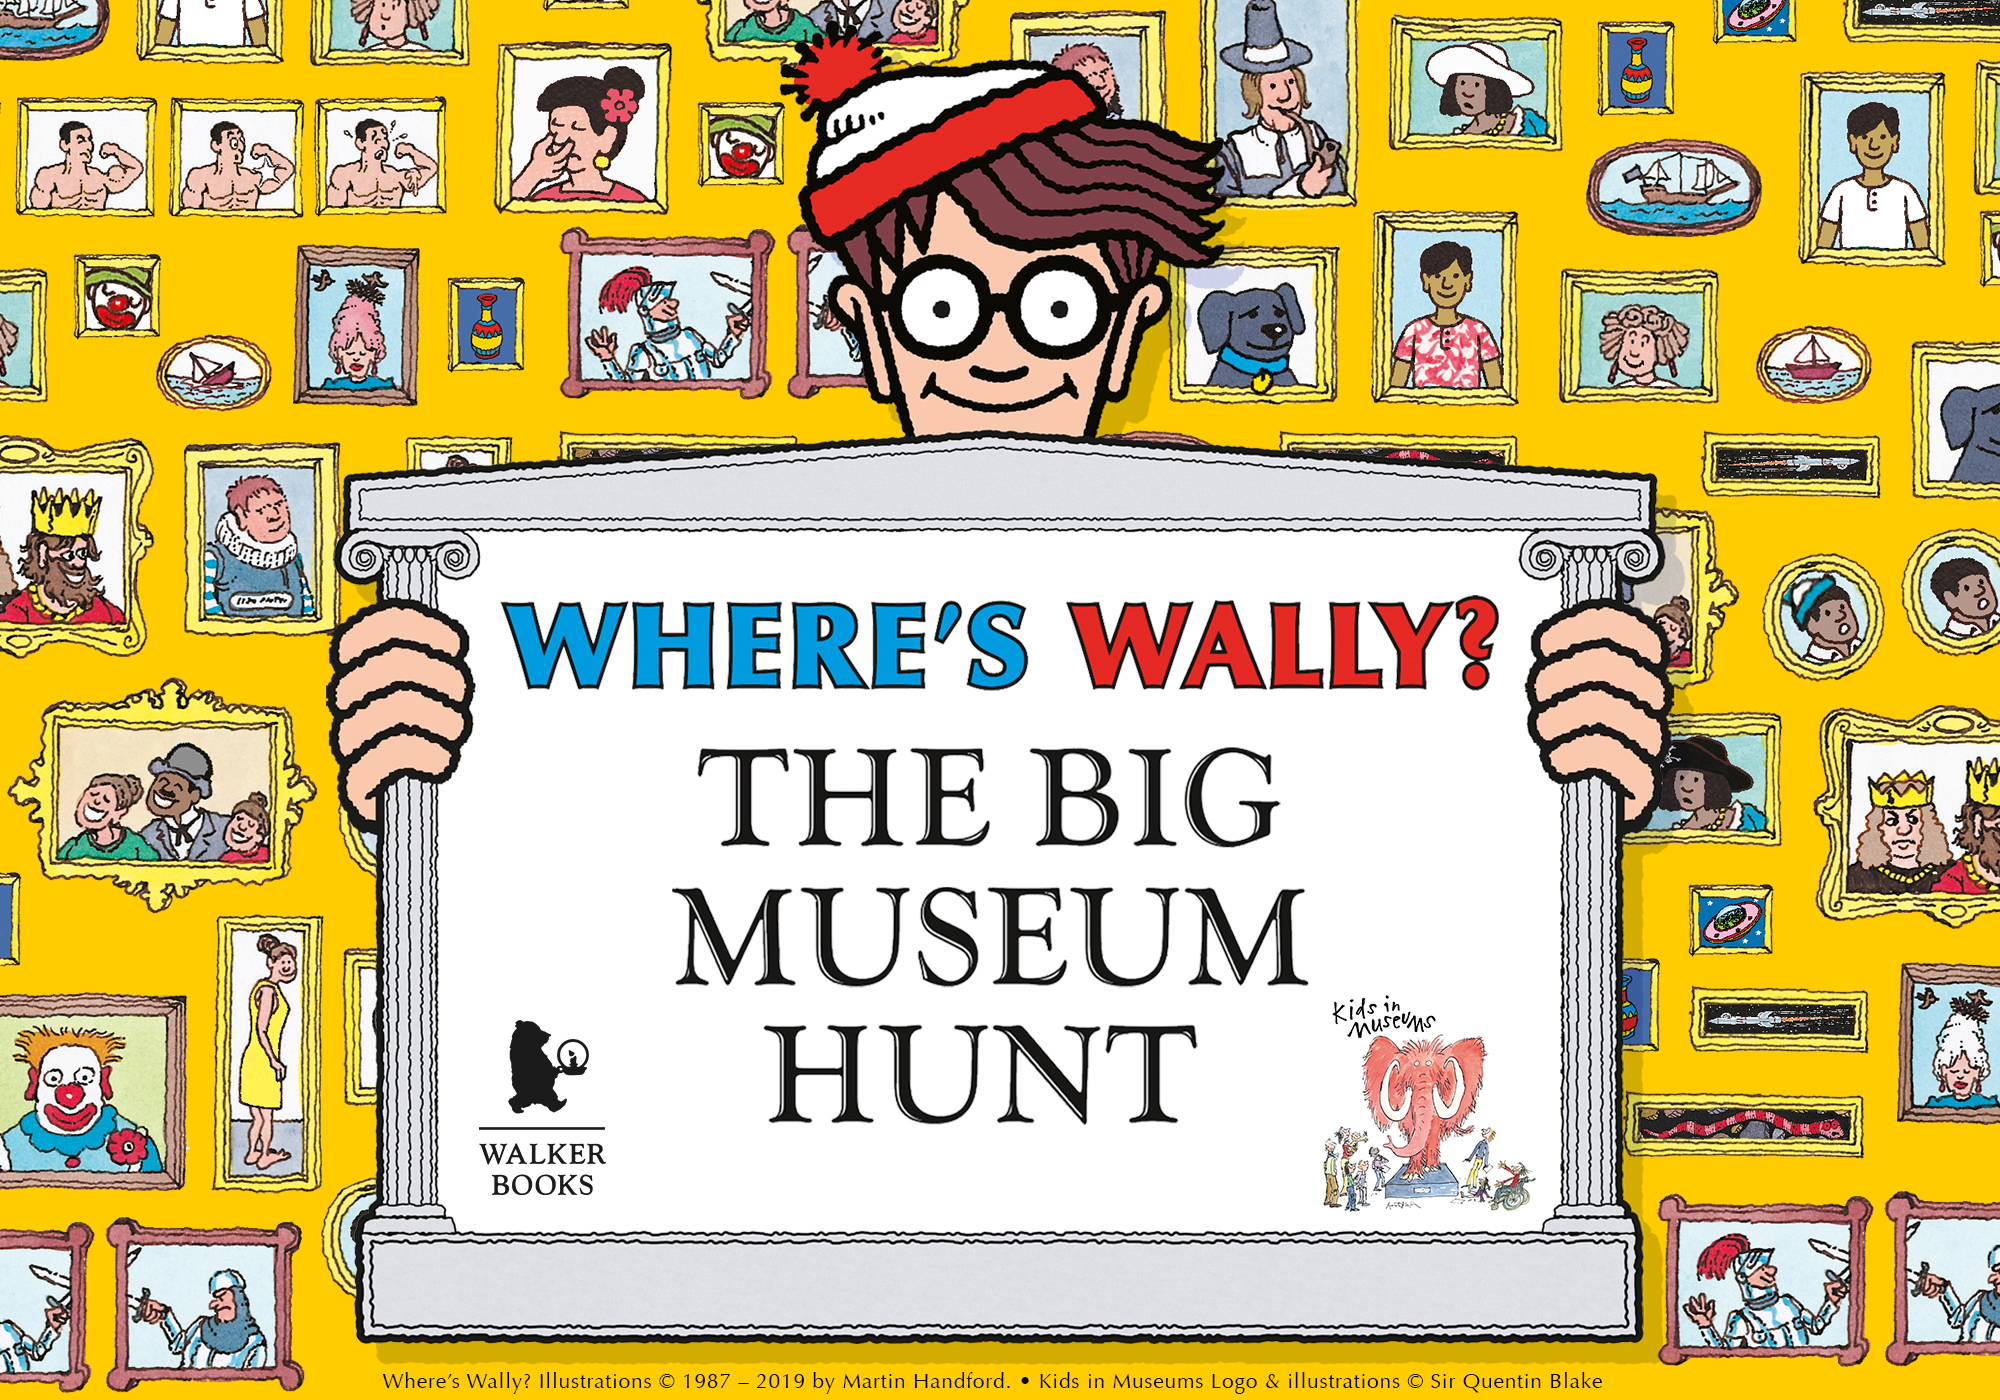 Where's Wally? And lots of family fun at Hastings Museum in half term